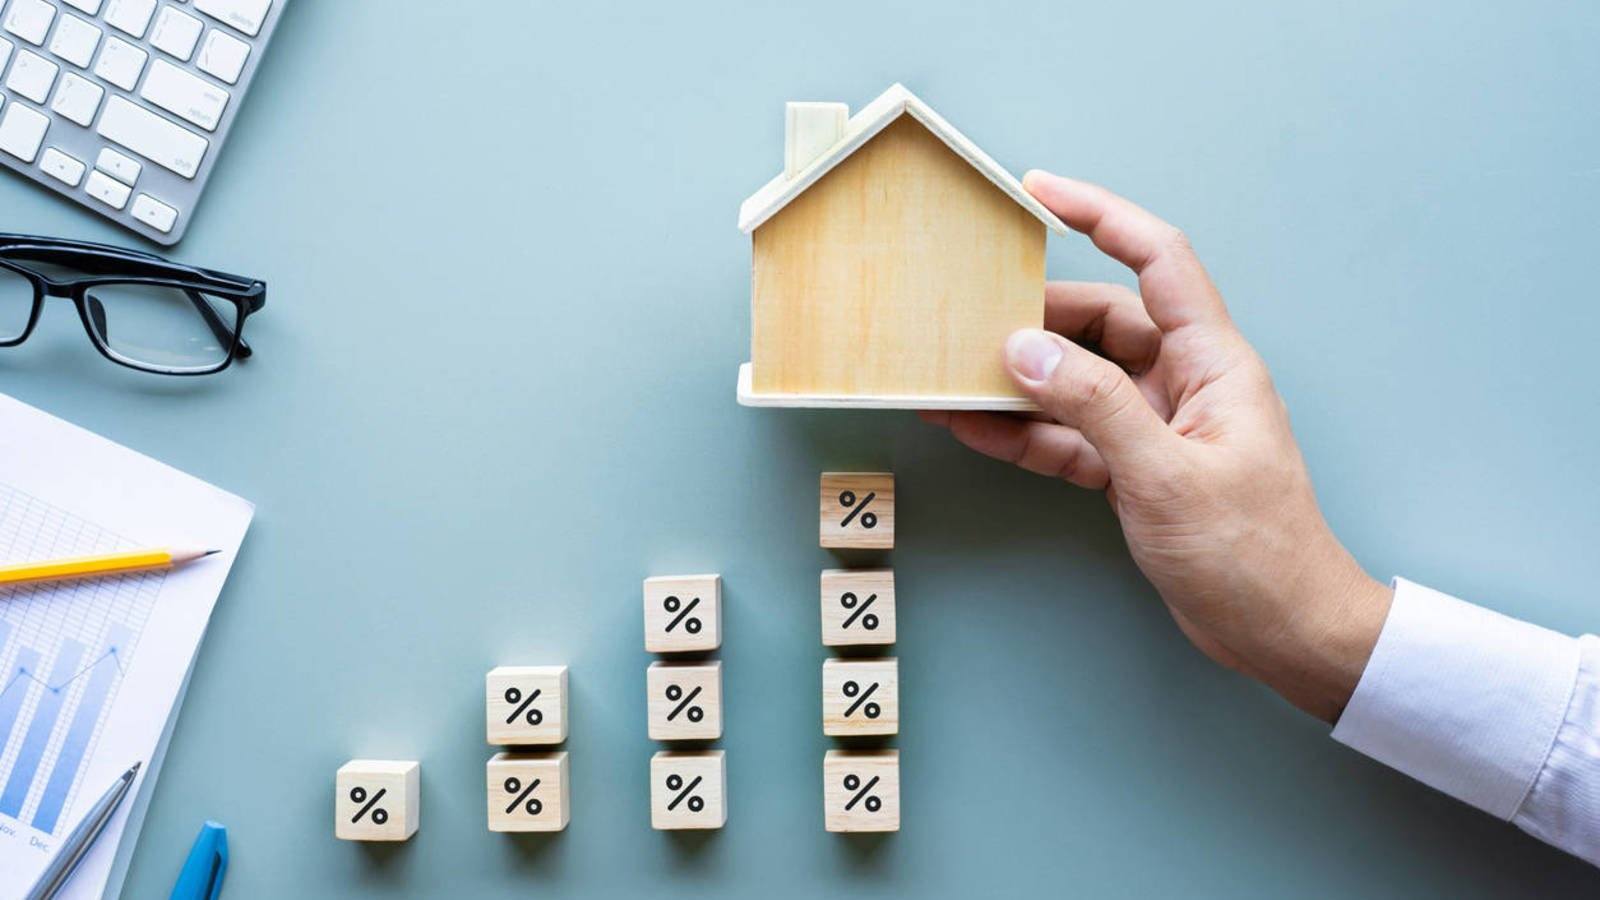 Different Types of Housing Loans Offered in Malaysia